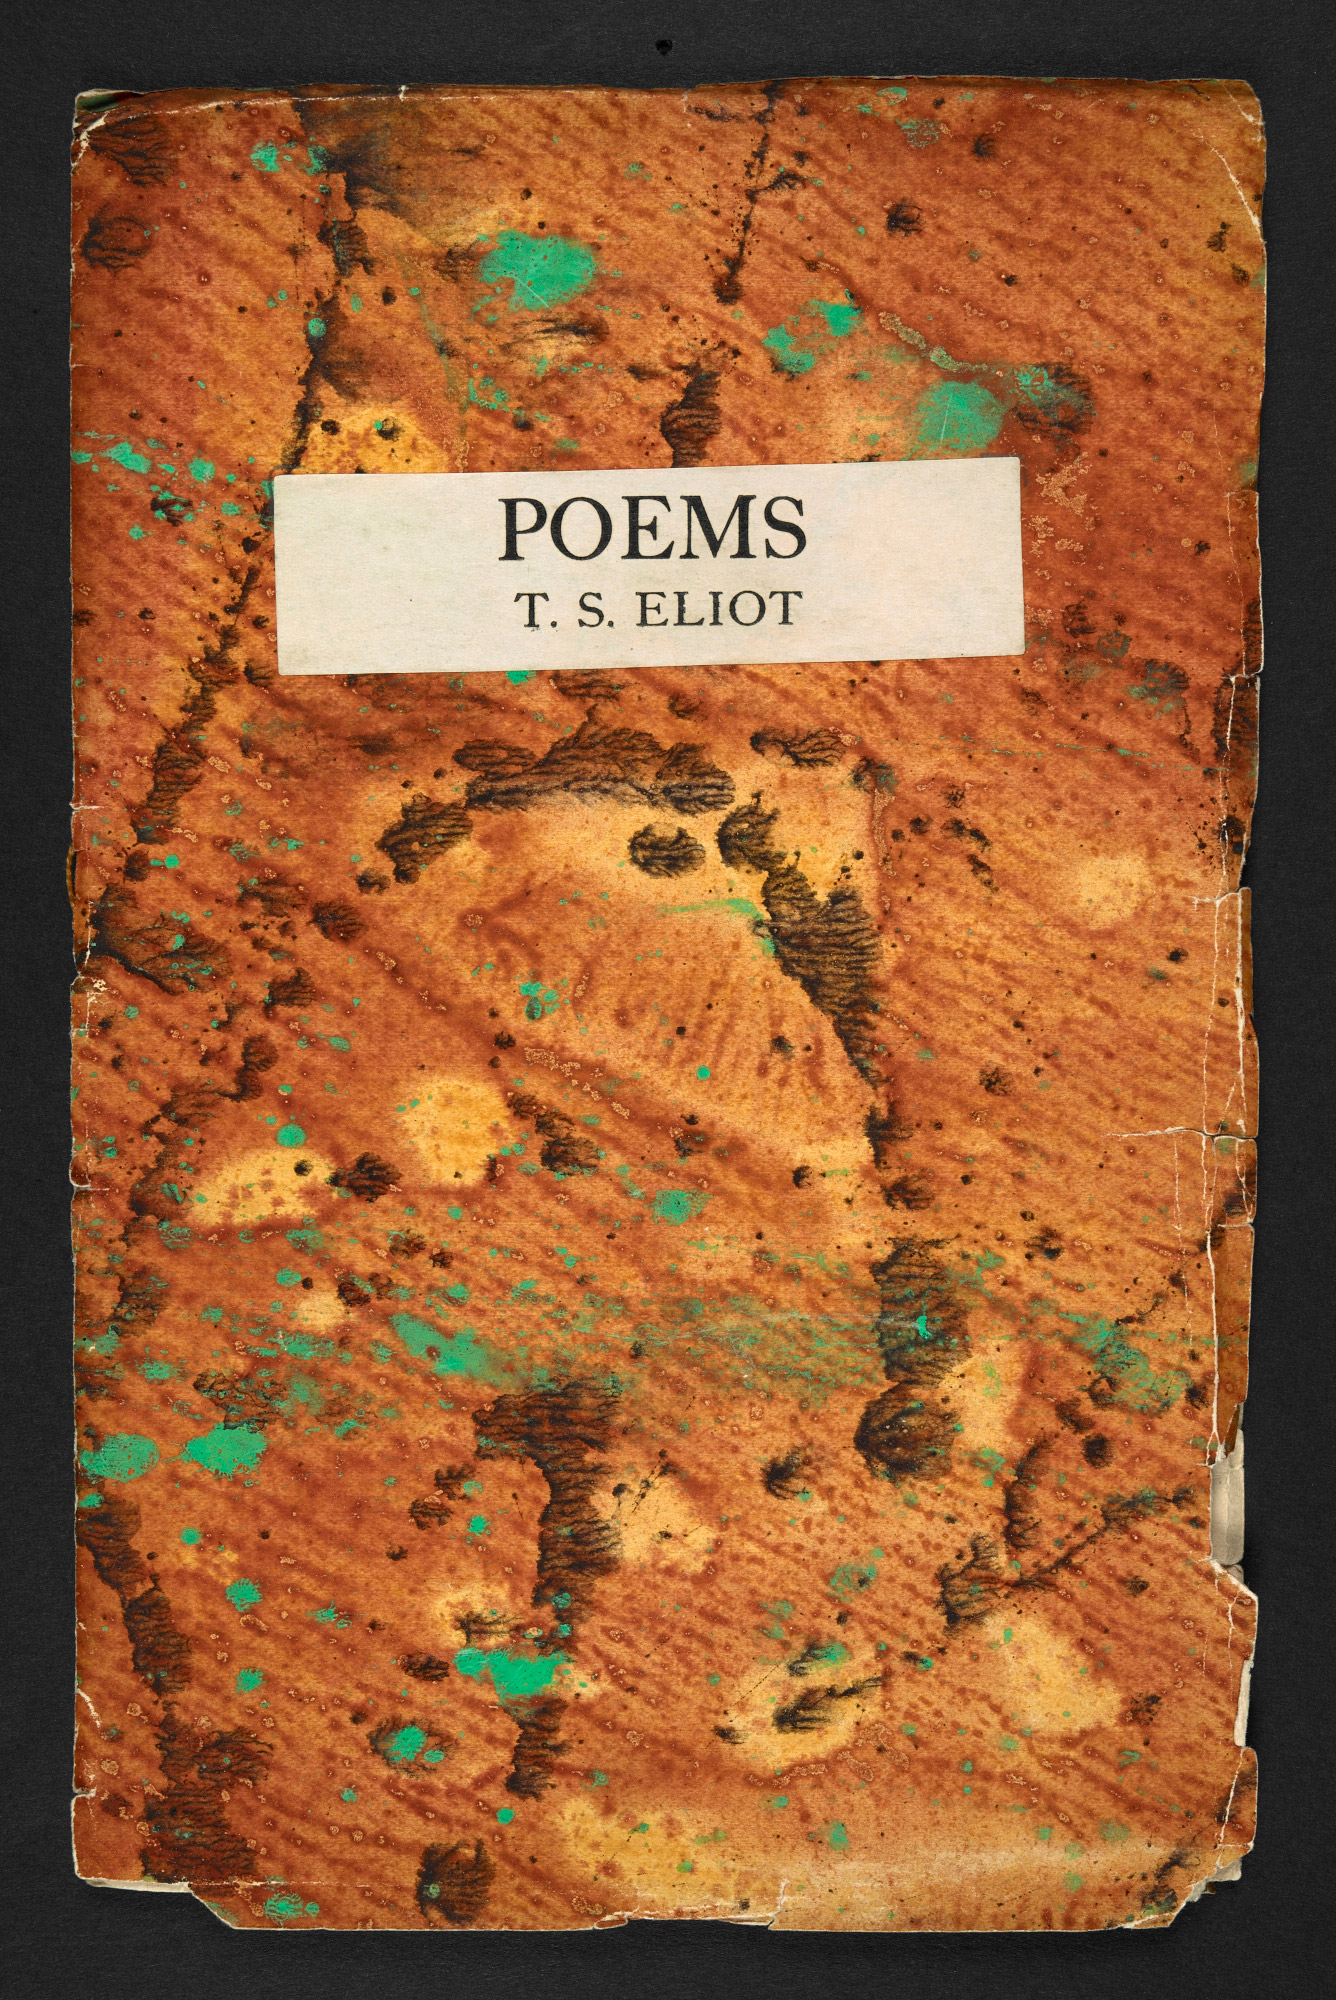 Poems by T S Eliot, published by the Hogarth Press